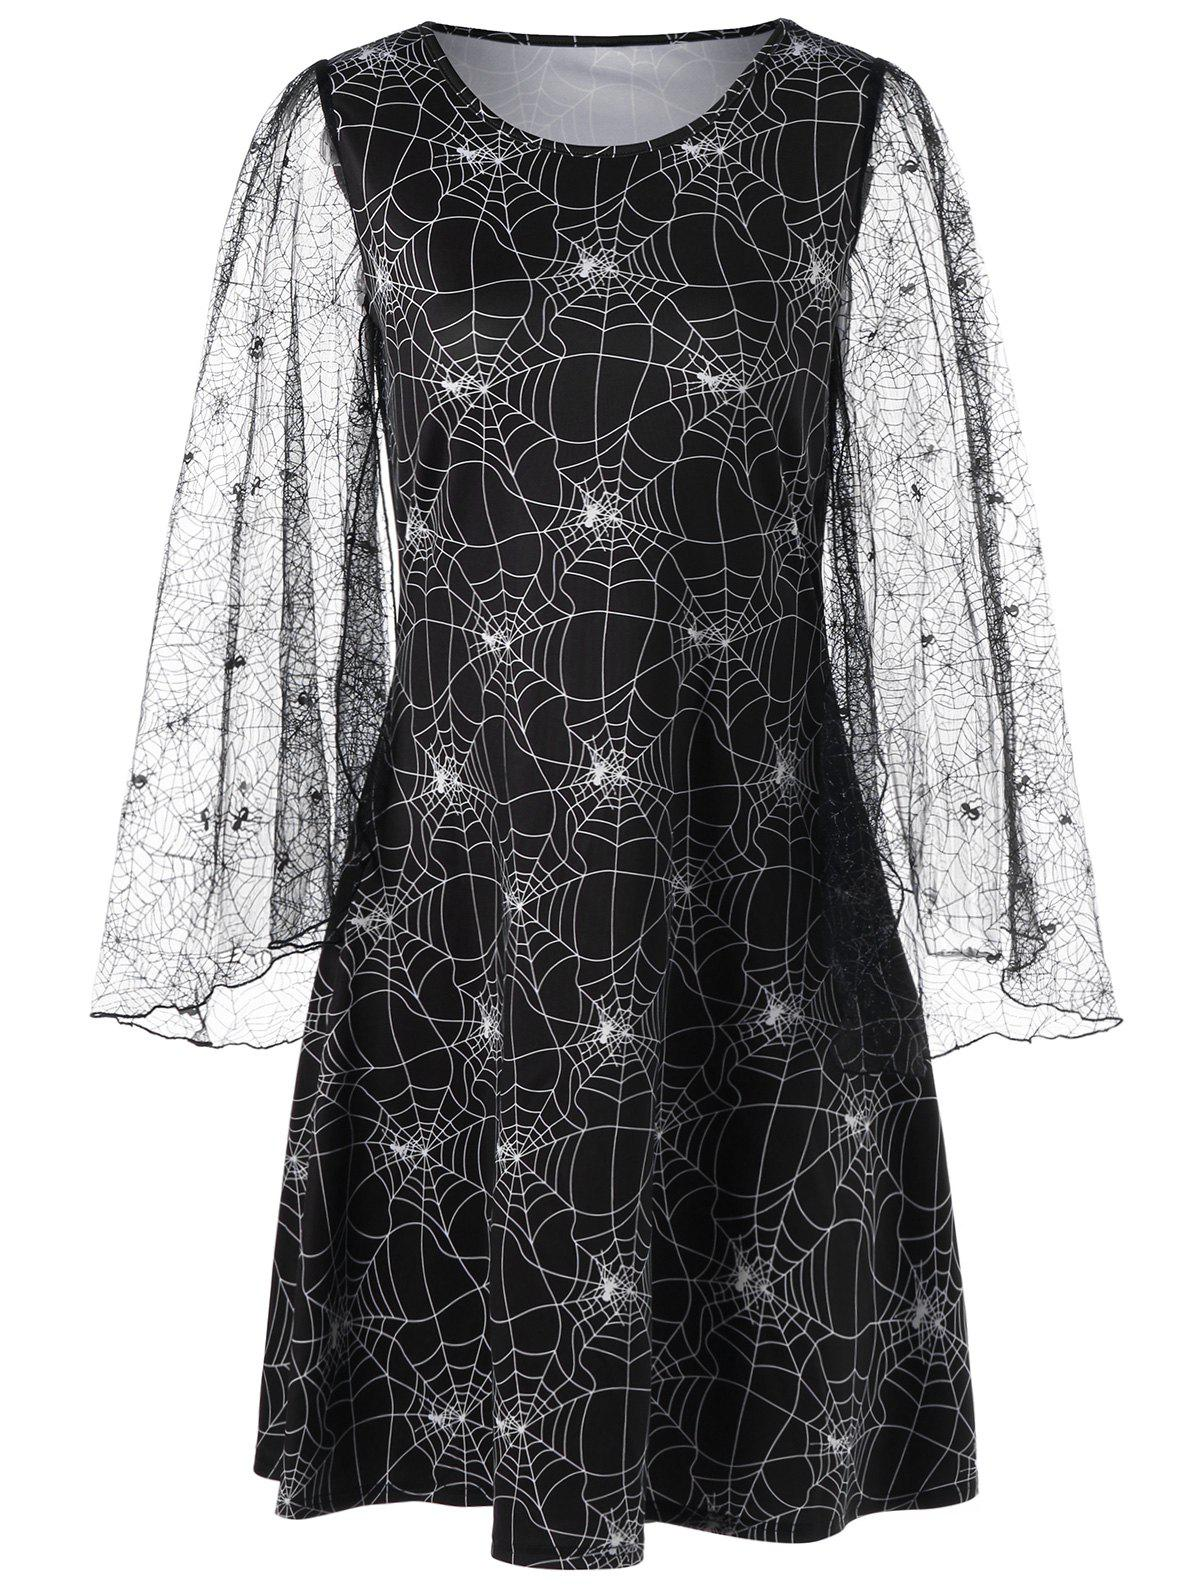 81254c28c5e 51% OFF   2019 Halloween Spider Web Print Lace Sleeve Dress ...